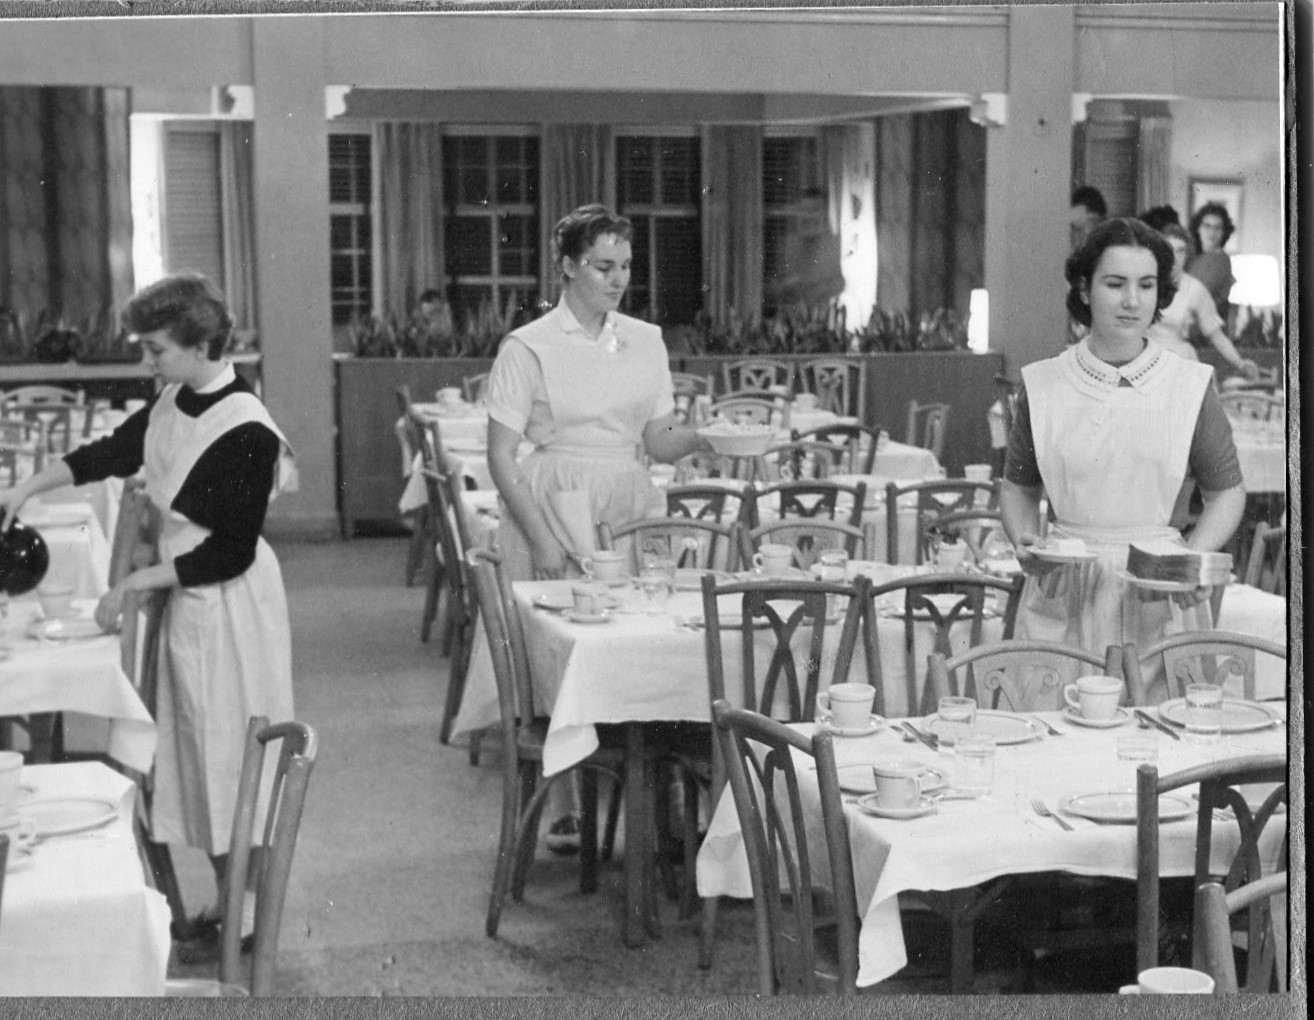 Students setting the tables before a meal